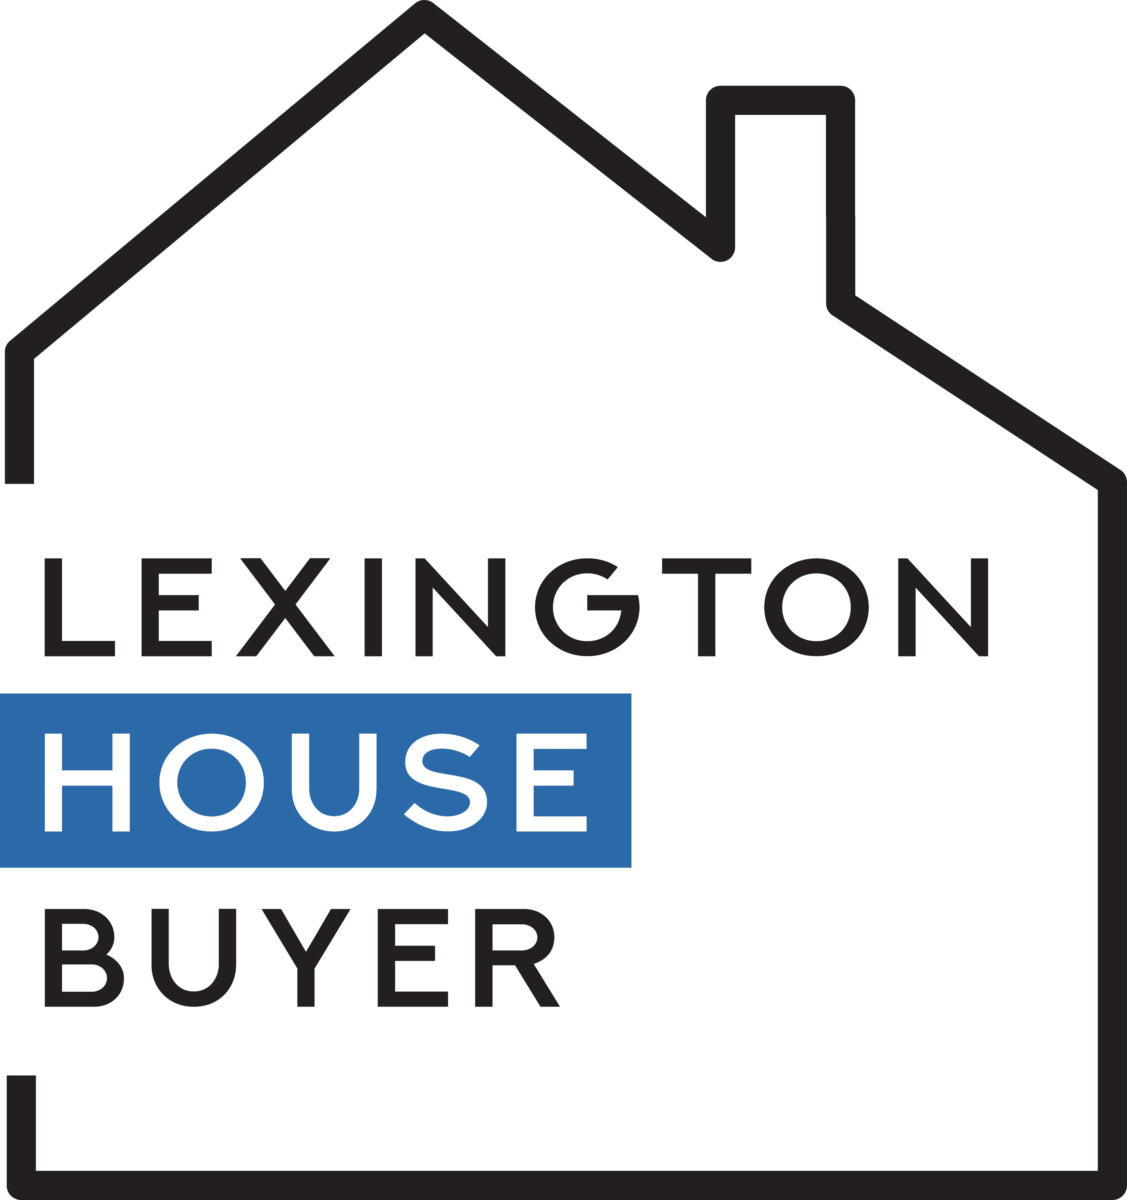 Lexington House Buyer logo